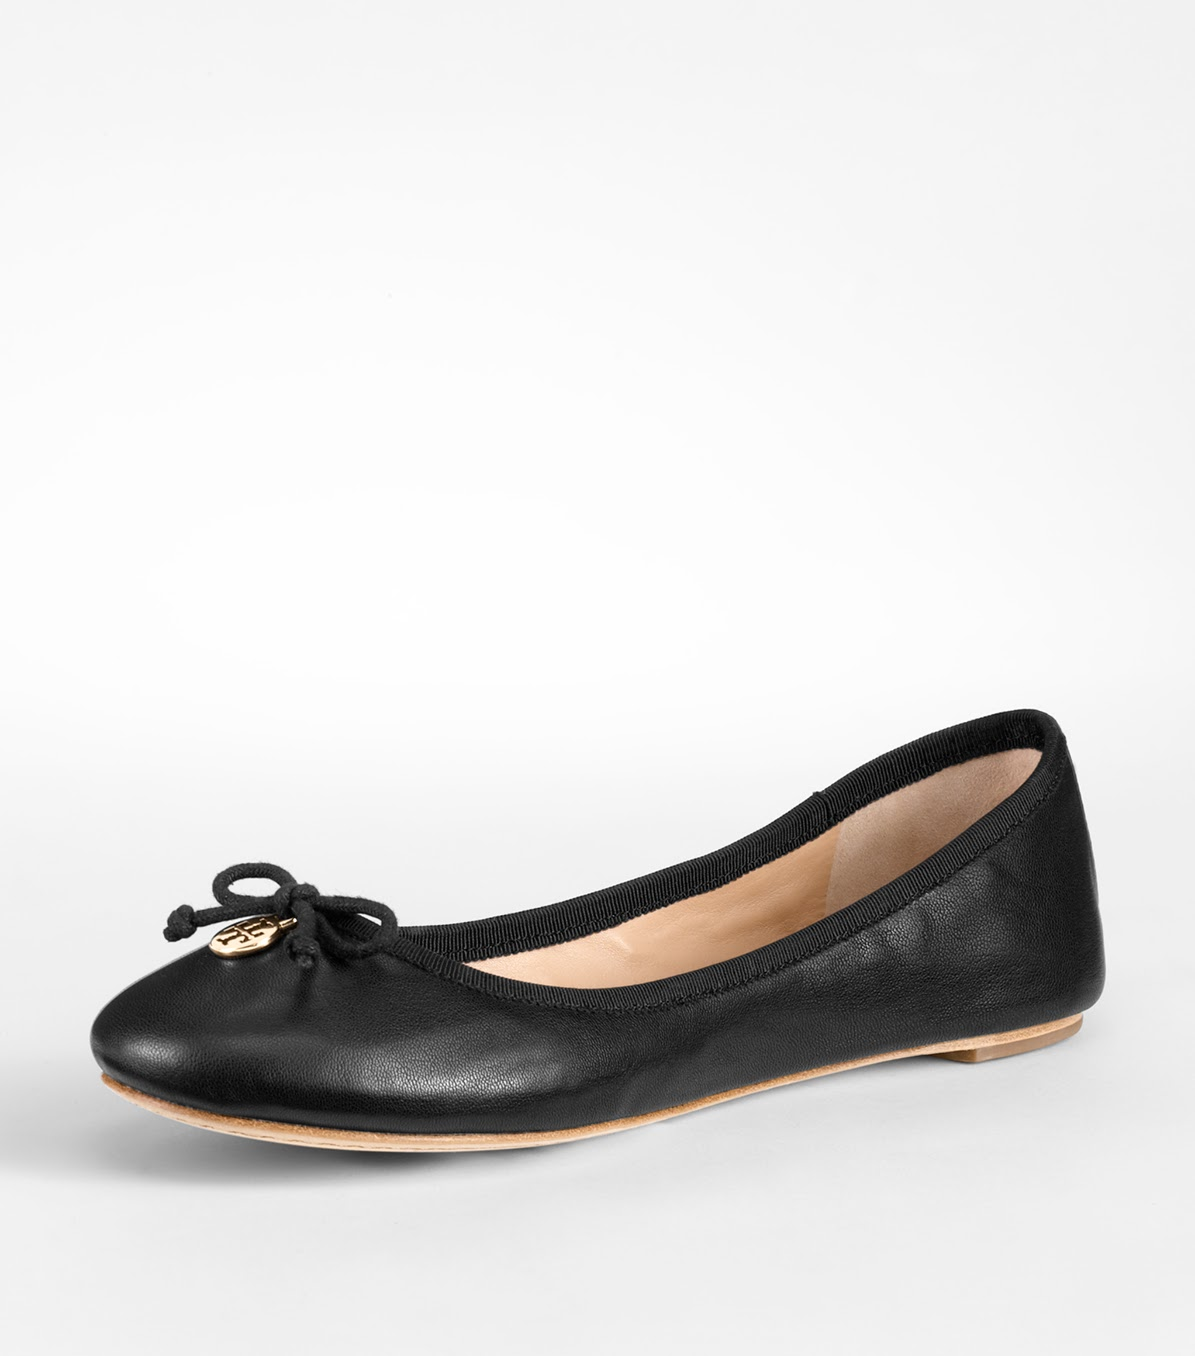 So I'd like to have one pair each of these Chelsea ballet flats please!  Size 36. Tory Burch ...